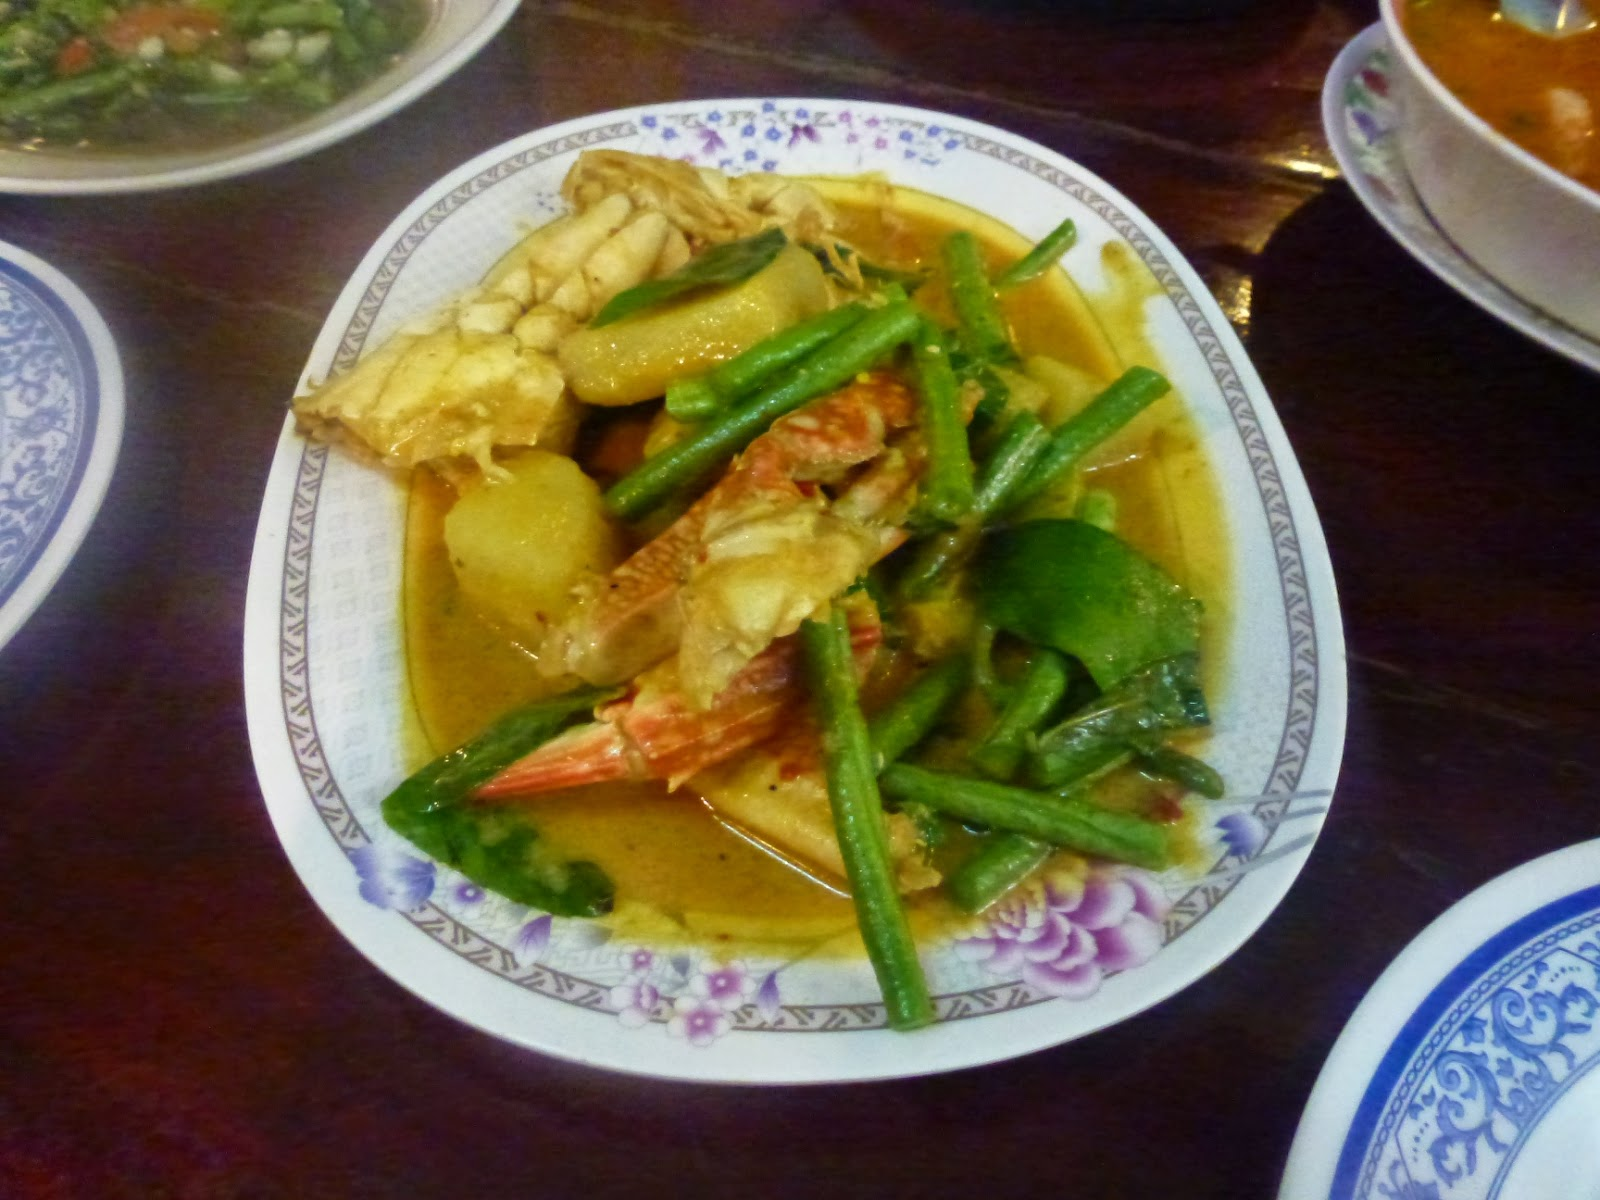 The historic menses quondam advice states that if you lot desire to sample authentic cuisine Where to consume inwards Phuket: No.6 eating theatre review